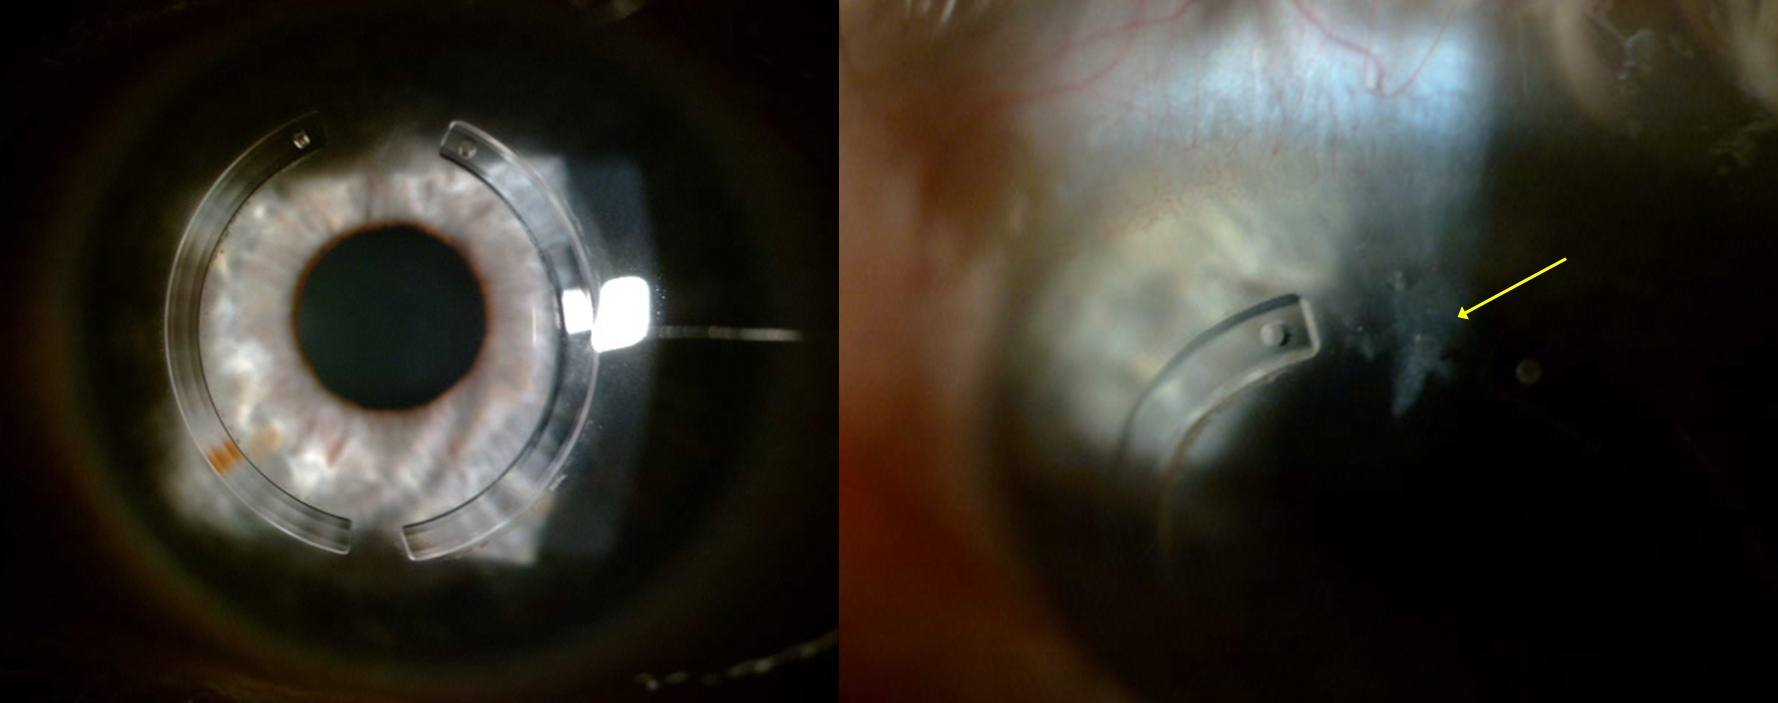 Figure-2-Post-corneal-ring-treatment